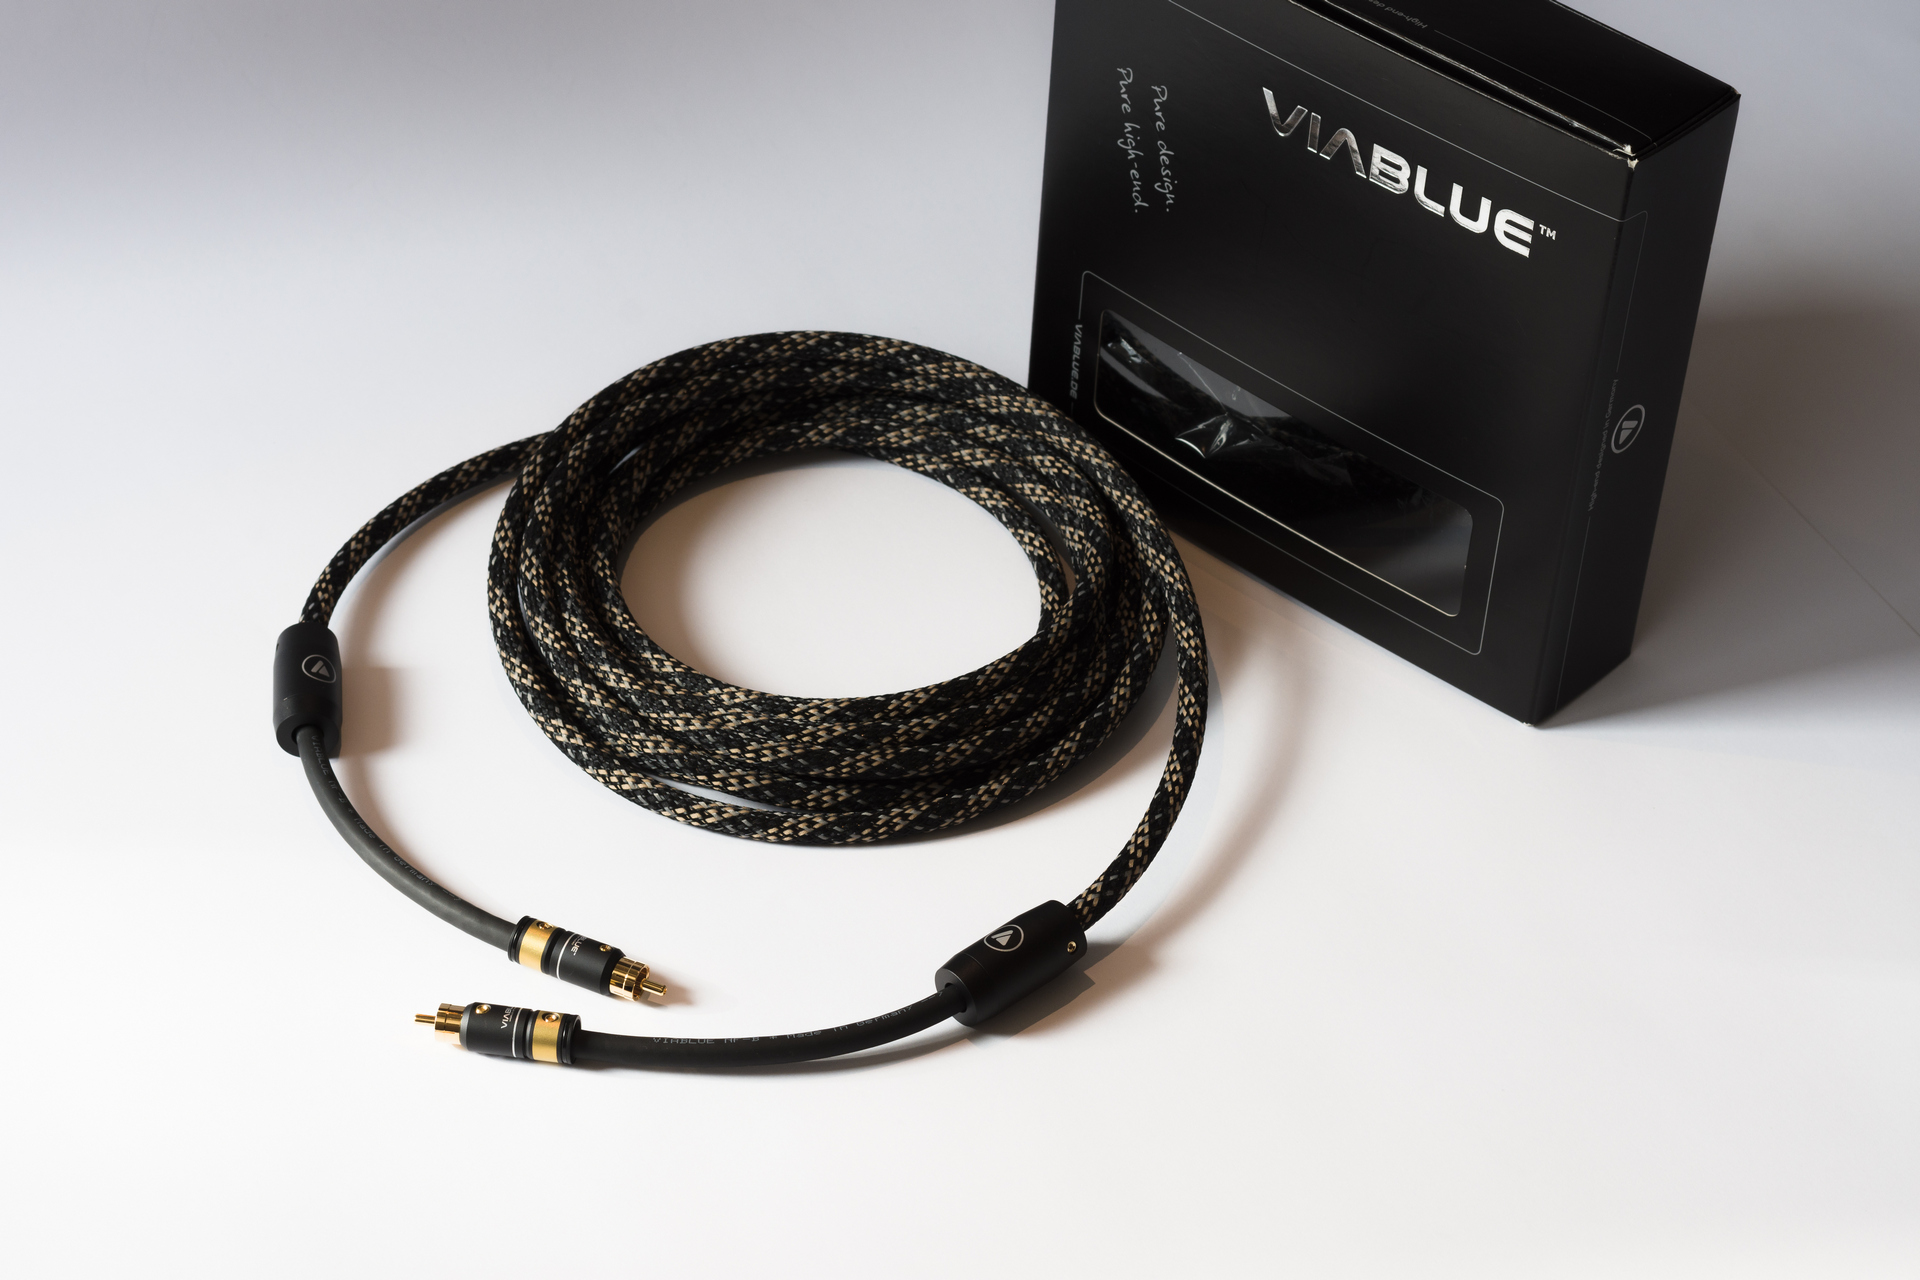 VIABLUE NF-B SUBWOOFER RCA CABLE